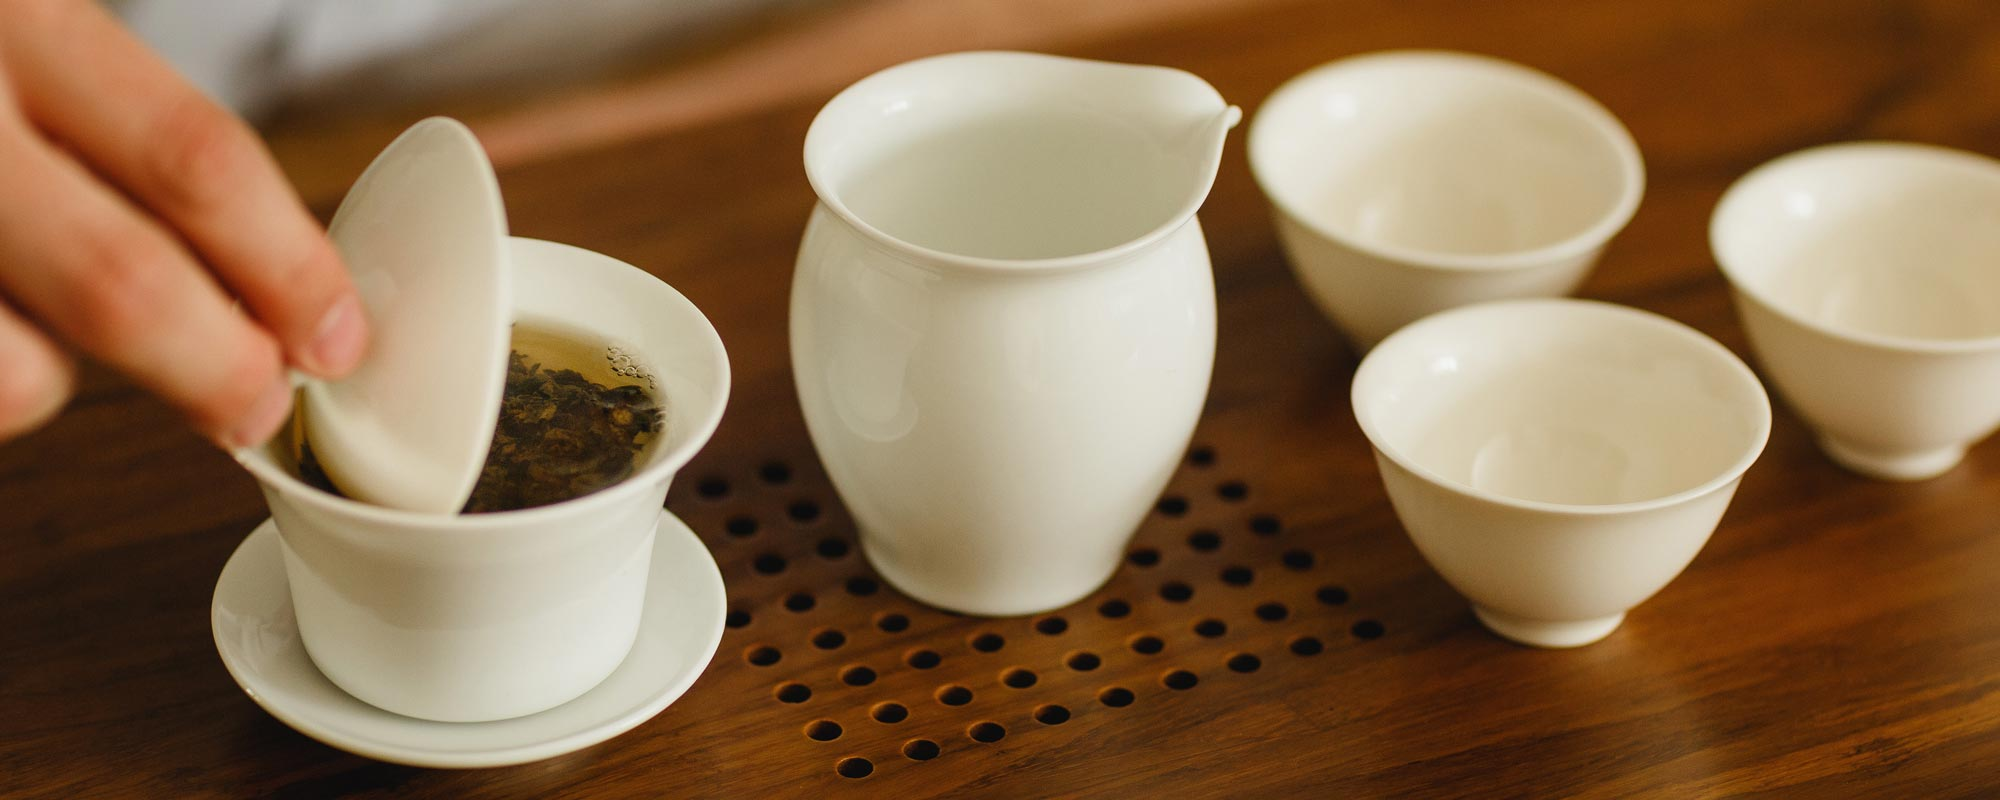 Traditional Chinese Gong Fu ceremony with porcelain gaiwan, pitcher and tea tasting cups